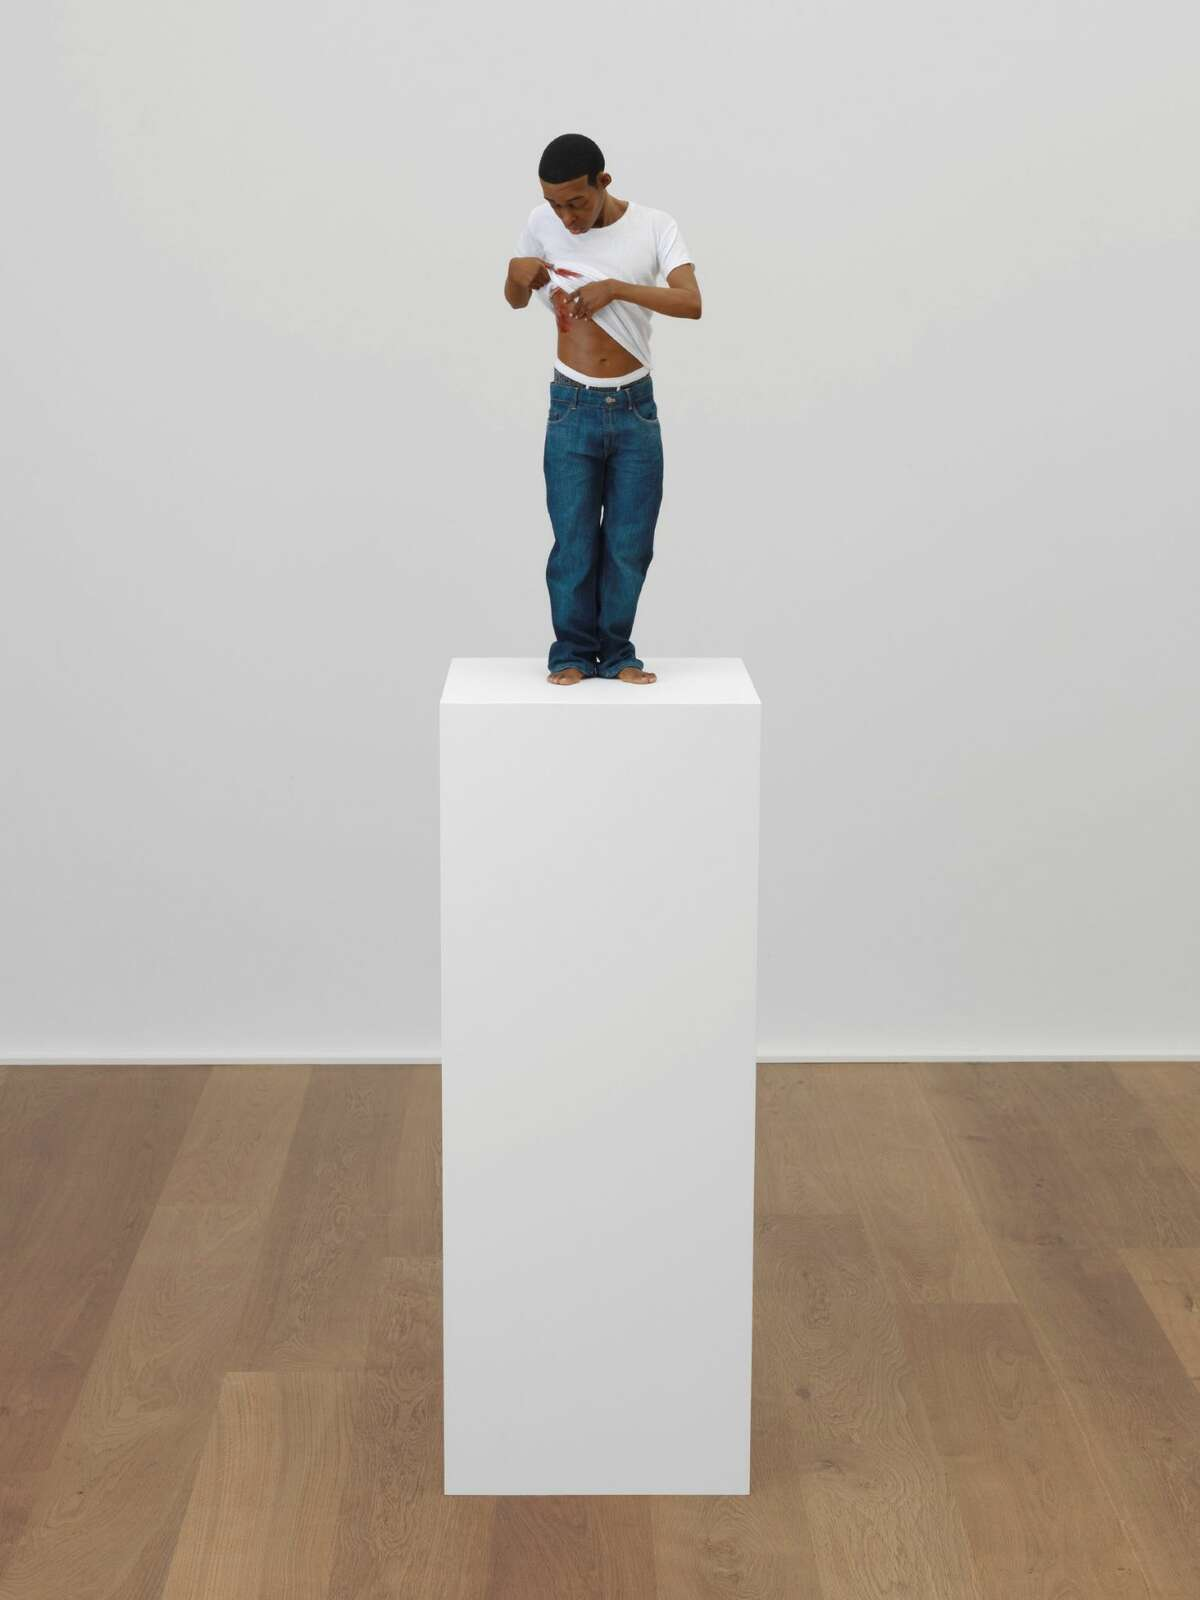 Ron Mueck, Youth, 2009.